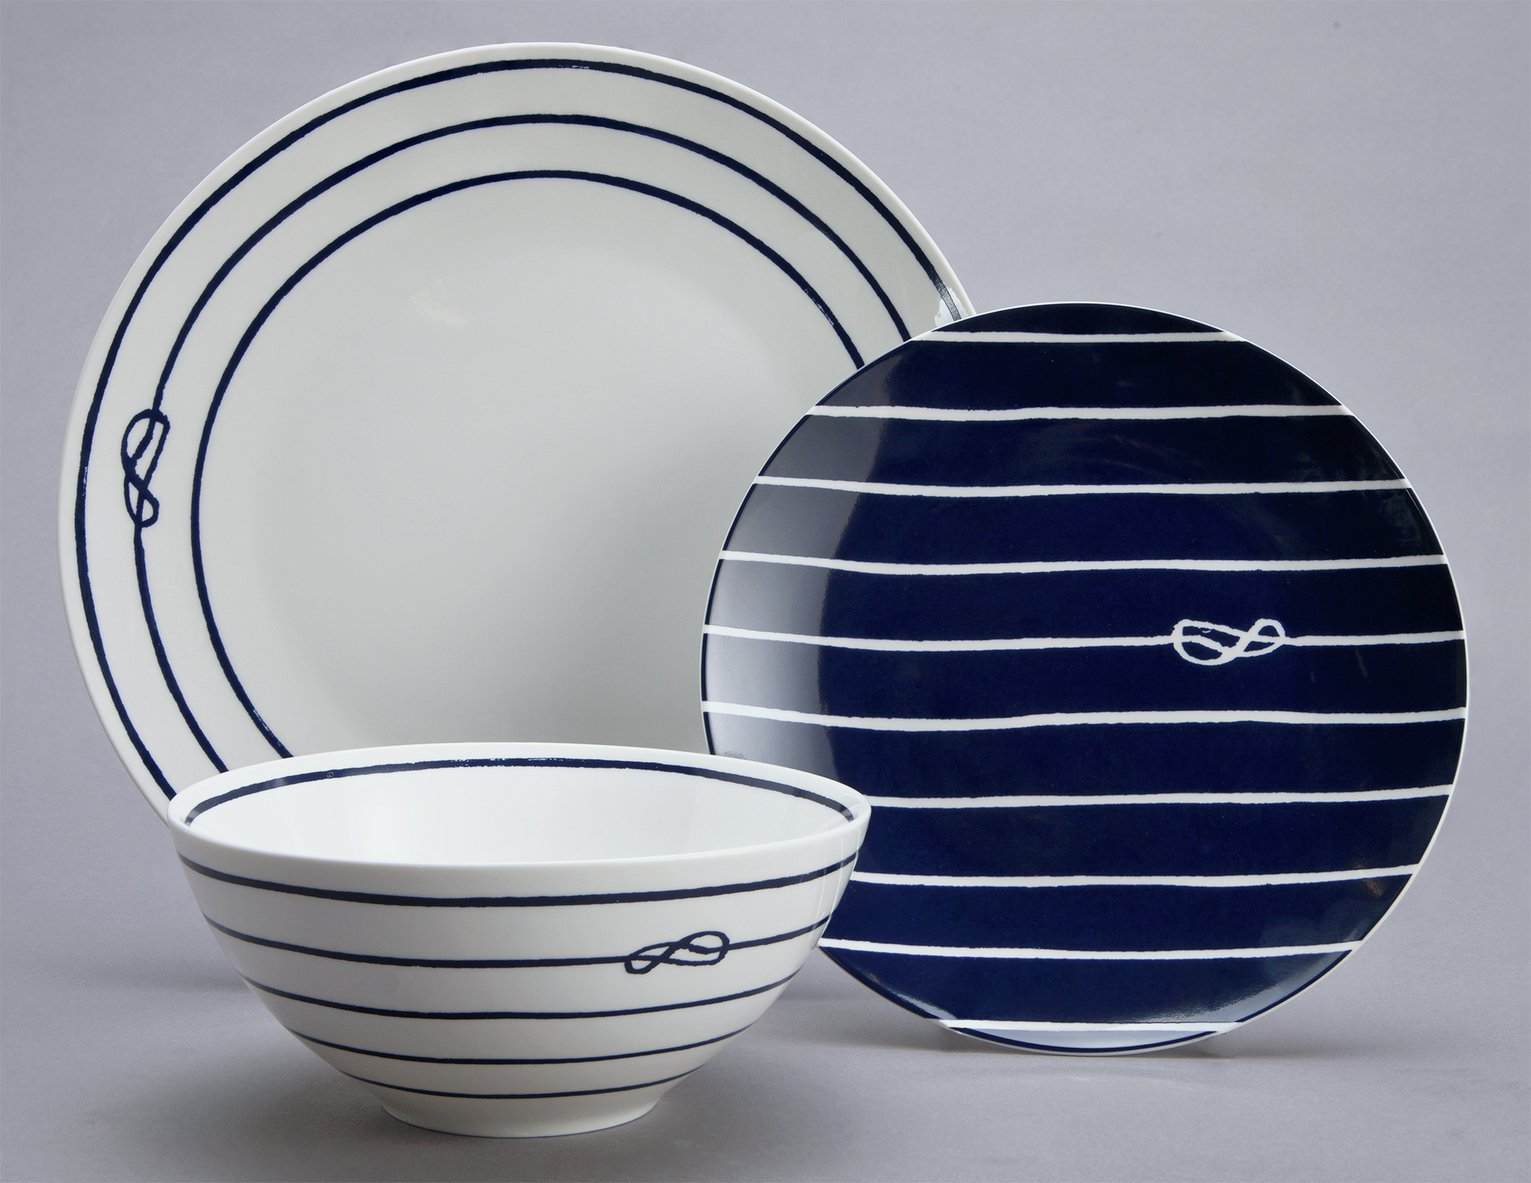 crockery sets available from. Black Bedroom Furniture Sets. Home Design Ideas